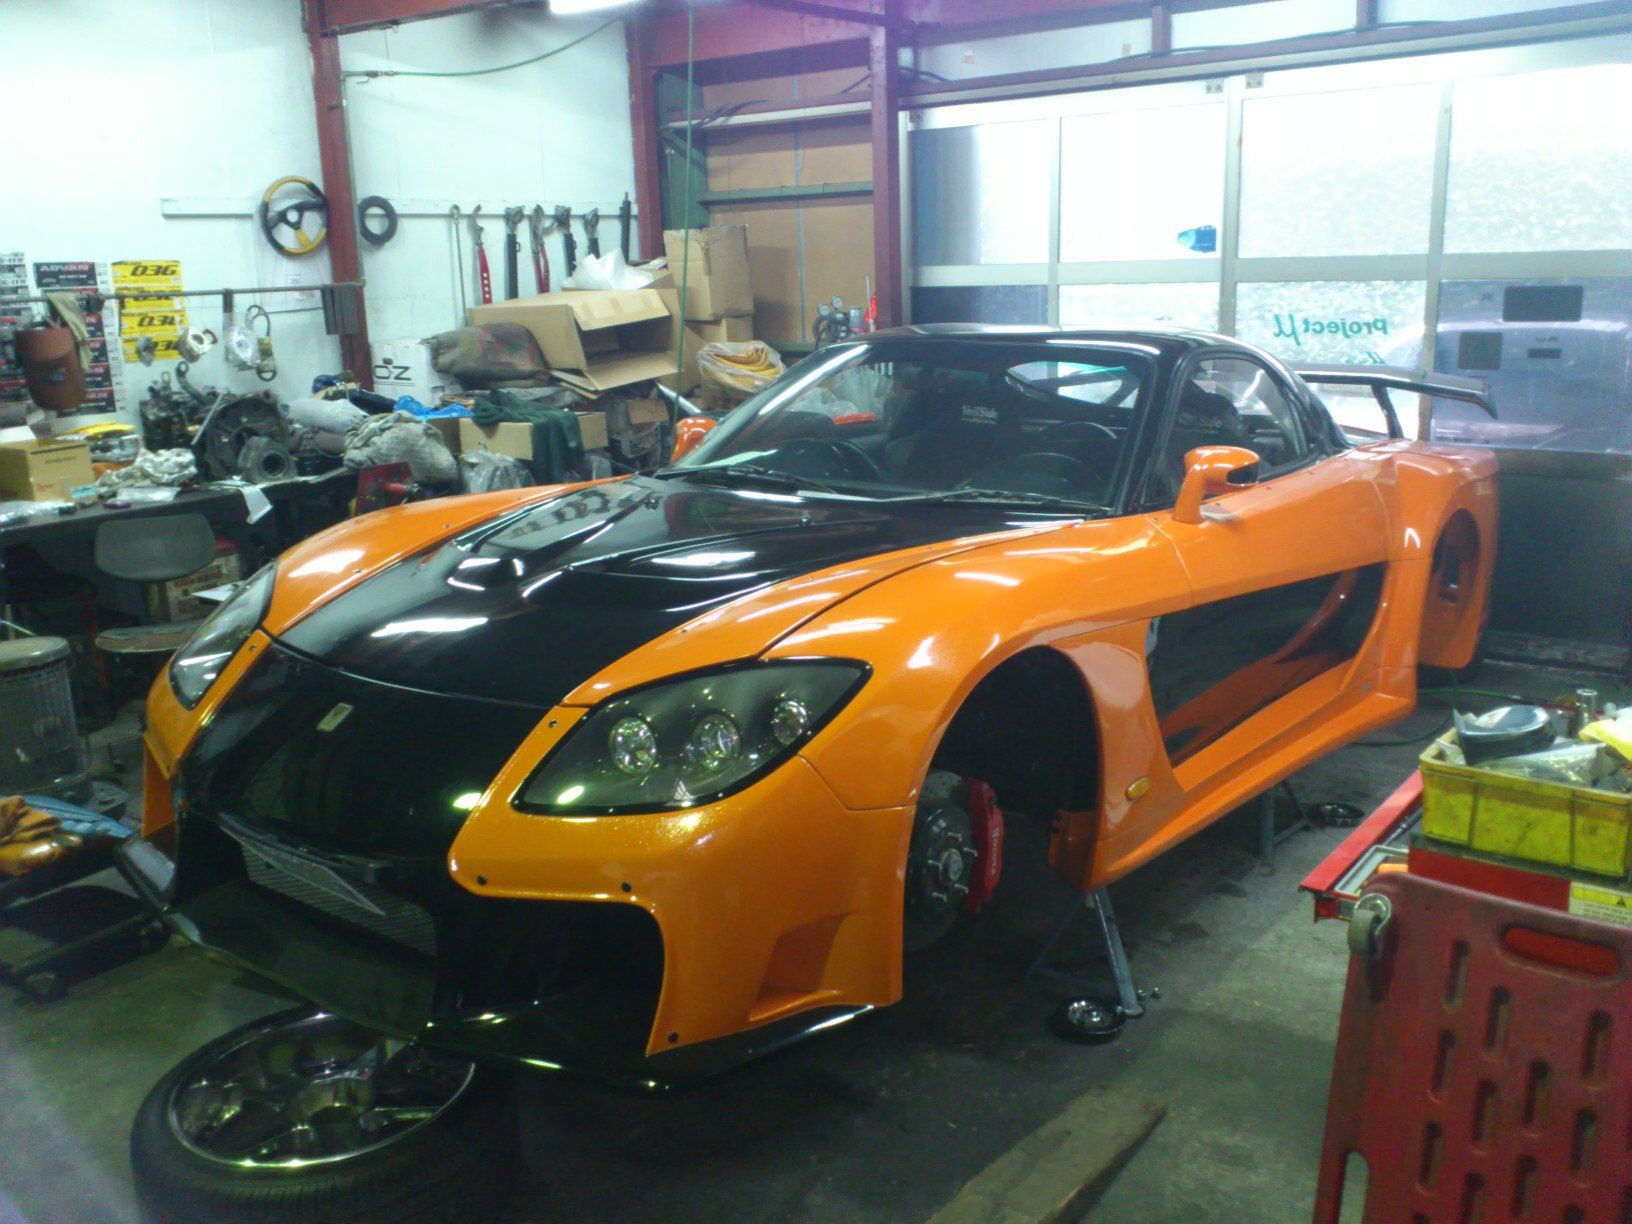 FD3S RX7 made by VeilSide  This car used at movie